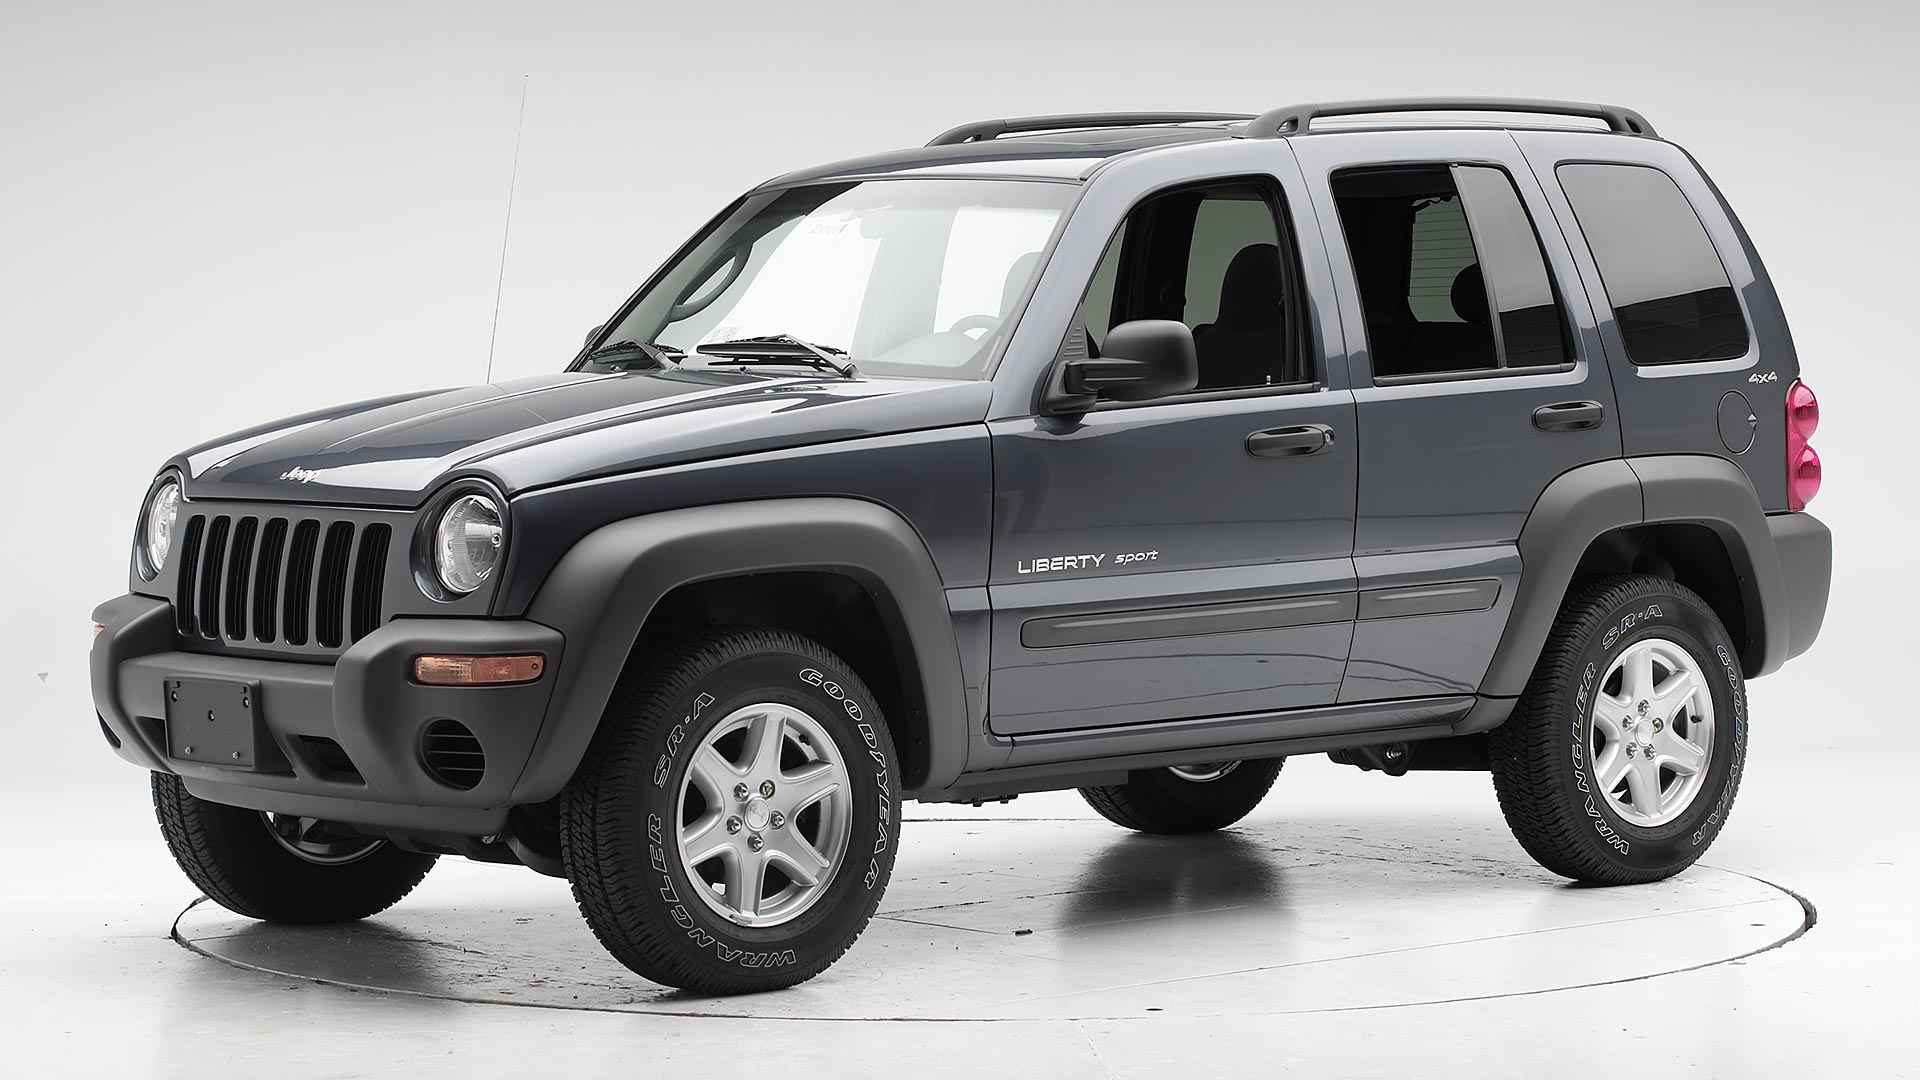 2004 Jeep Liberty 4-door SUV